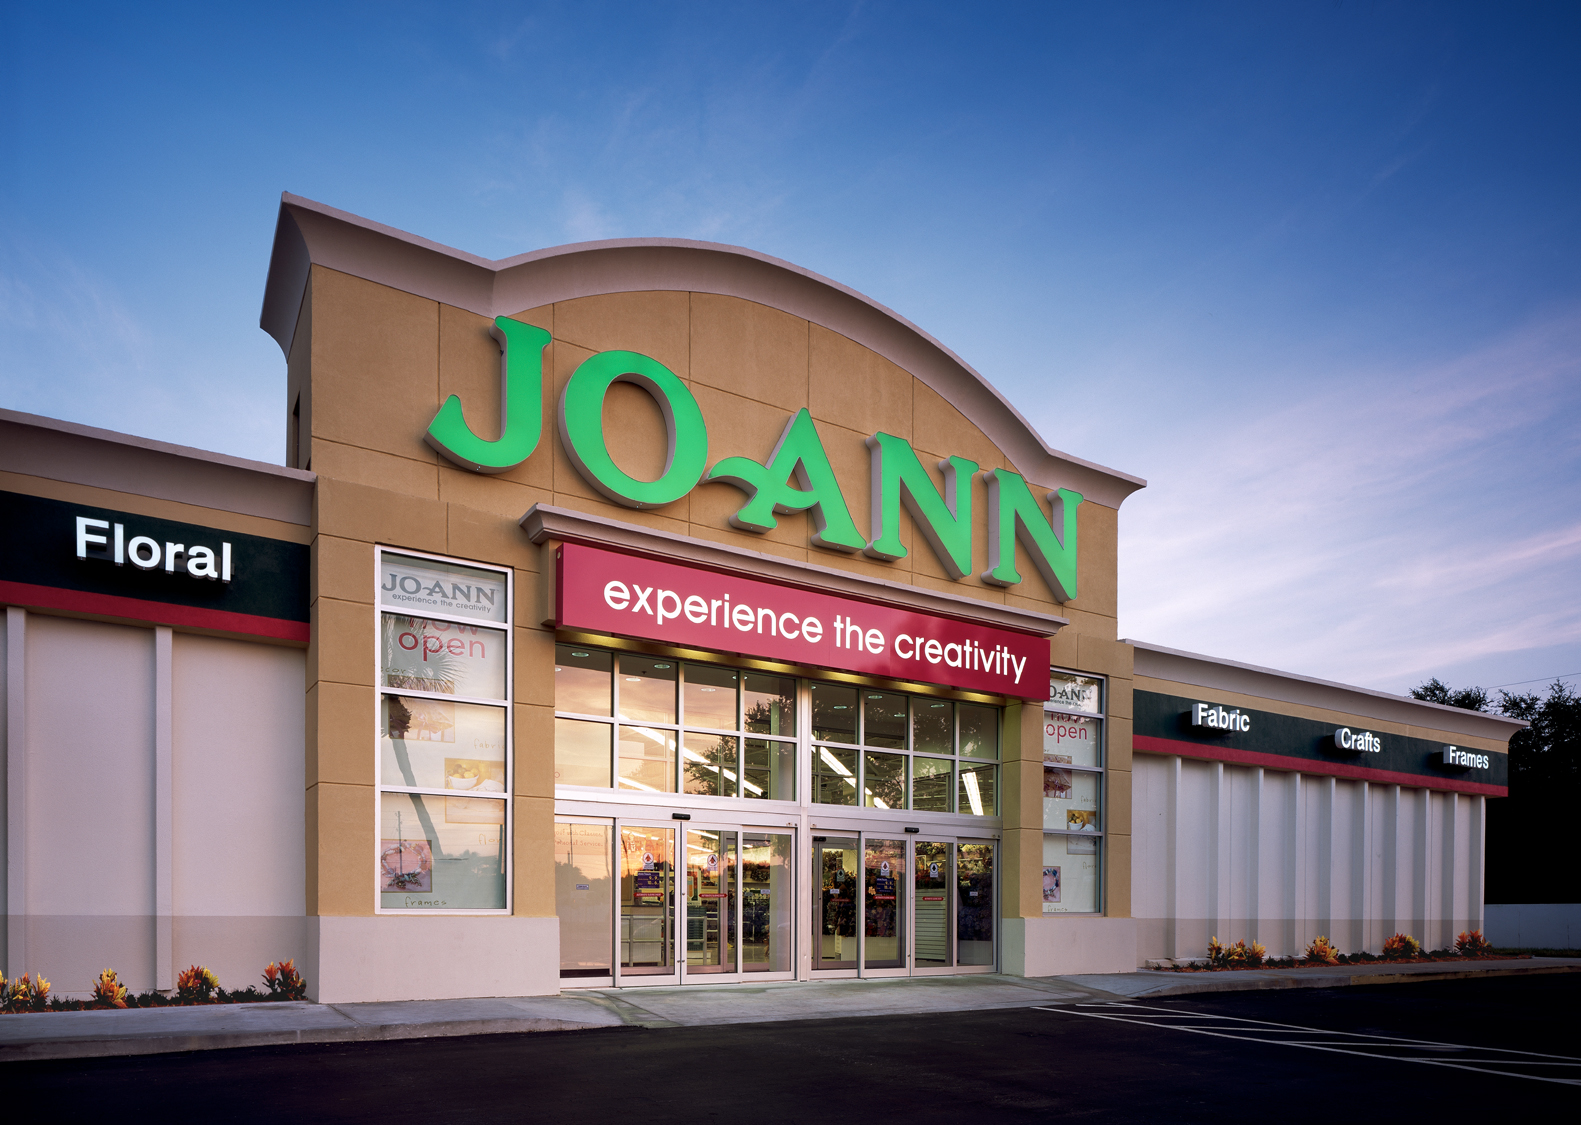 Joann's is a crafters paradise selling everything from paints, fabrics, frames, crafts, and florals to decor for the home and holidays.5/5(7).